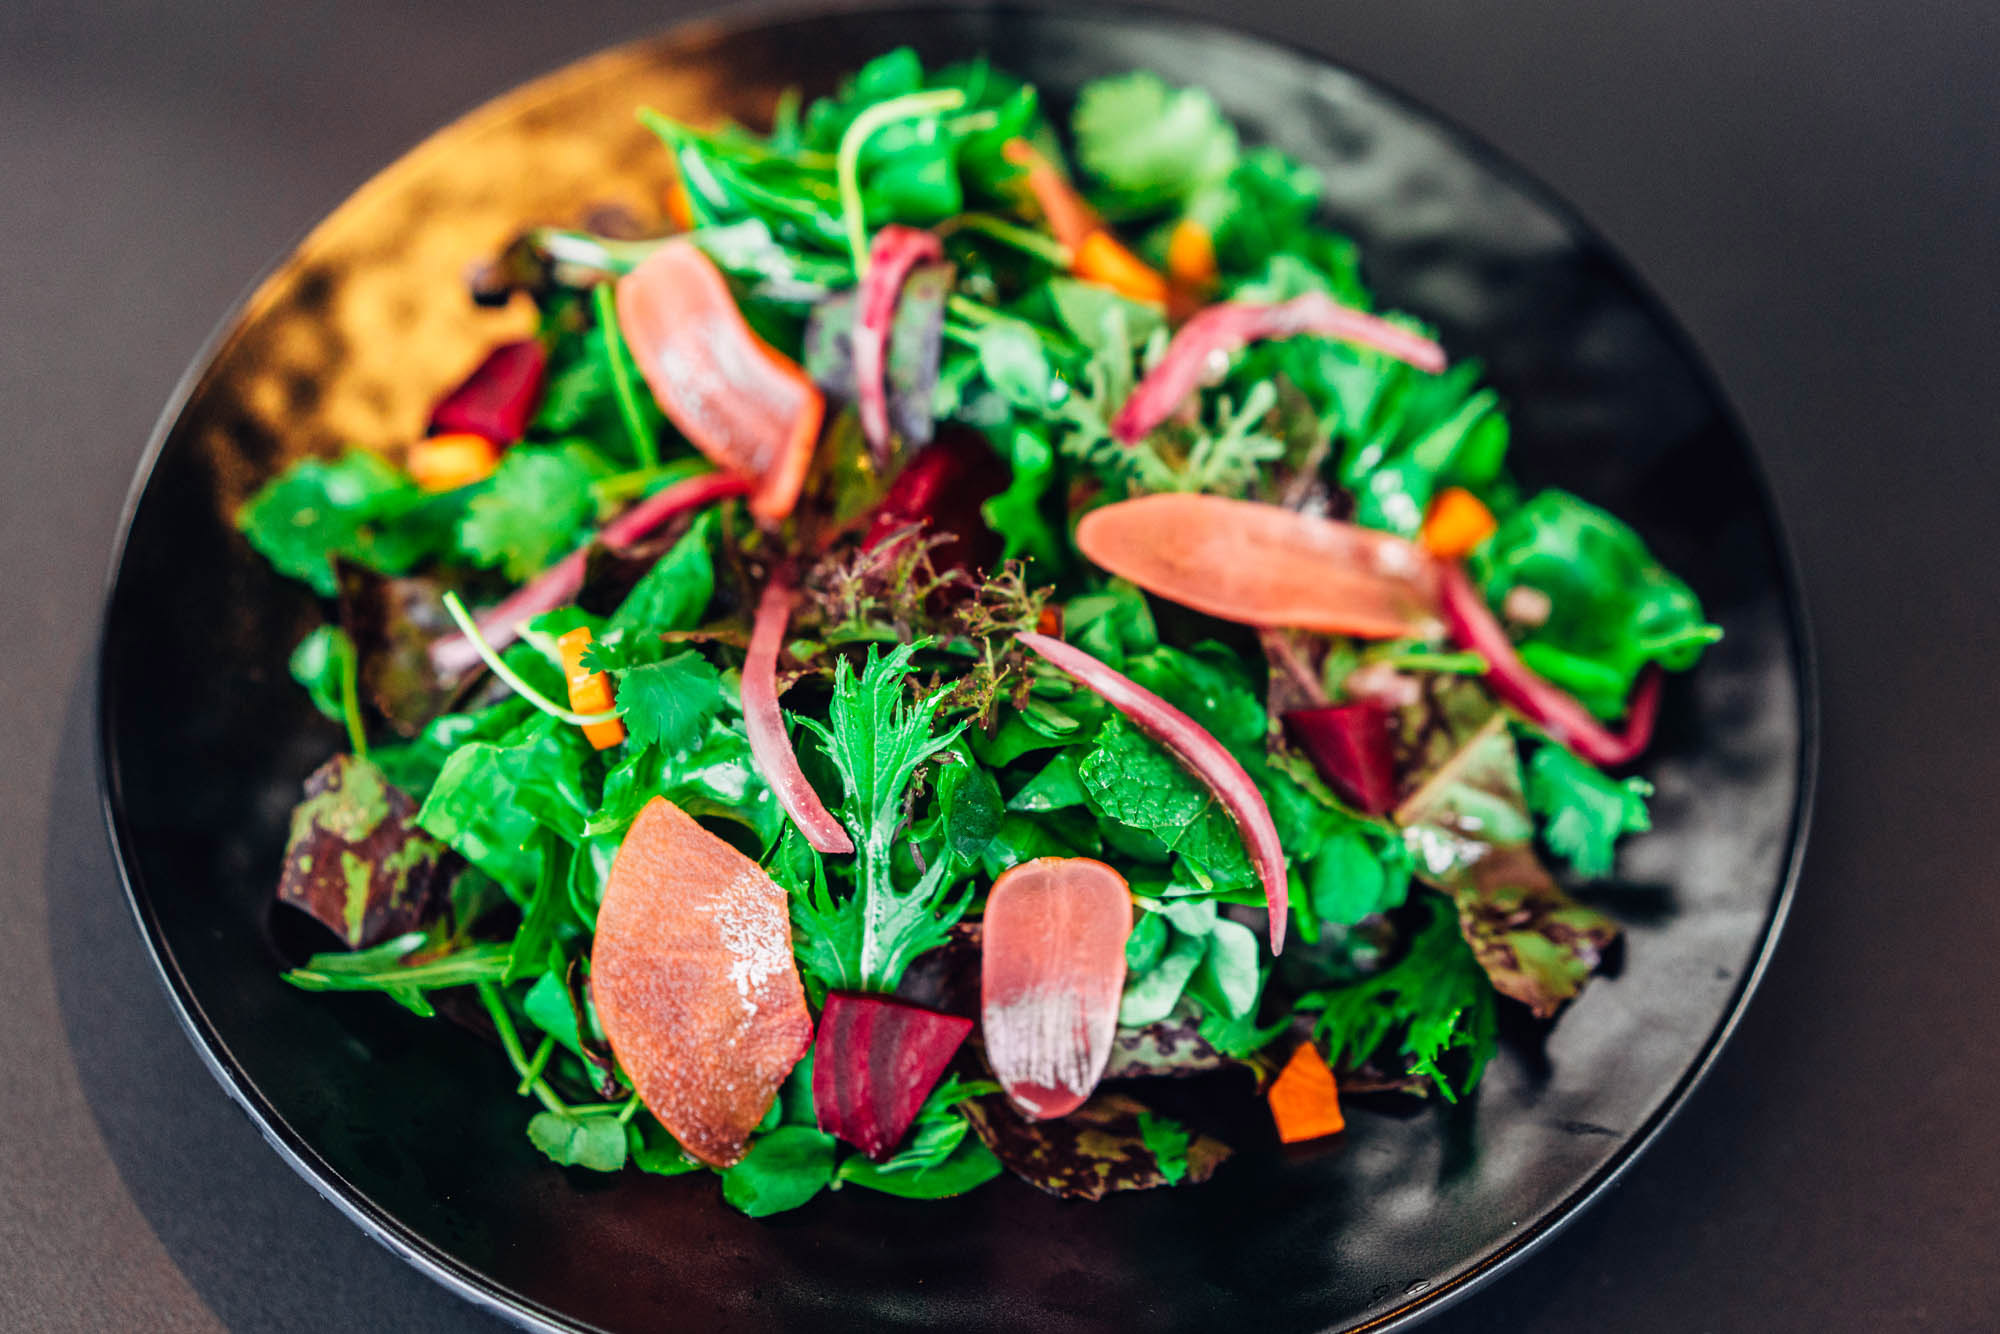 Helmed by chefs David Lee and Benjamin Goldman, the restaurant offers gorgeously executed and plated vegetarian fare in surroundings that will inspire you to stick to your healthy habits.